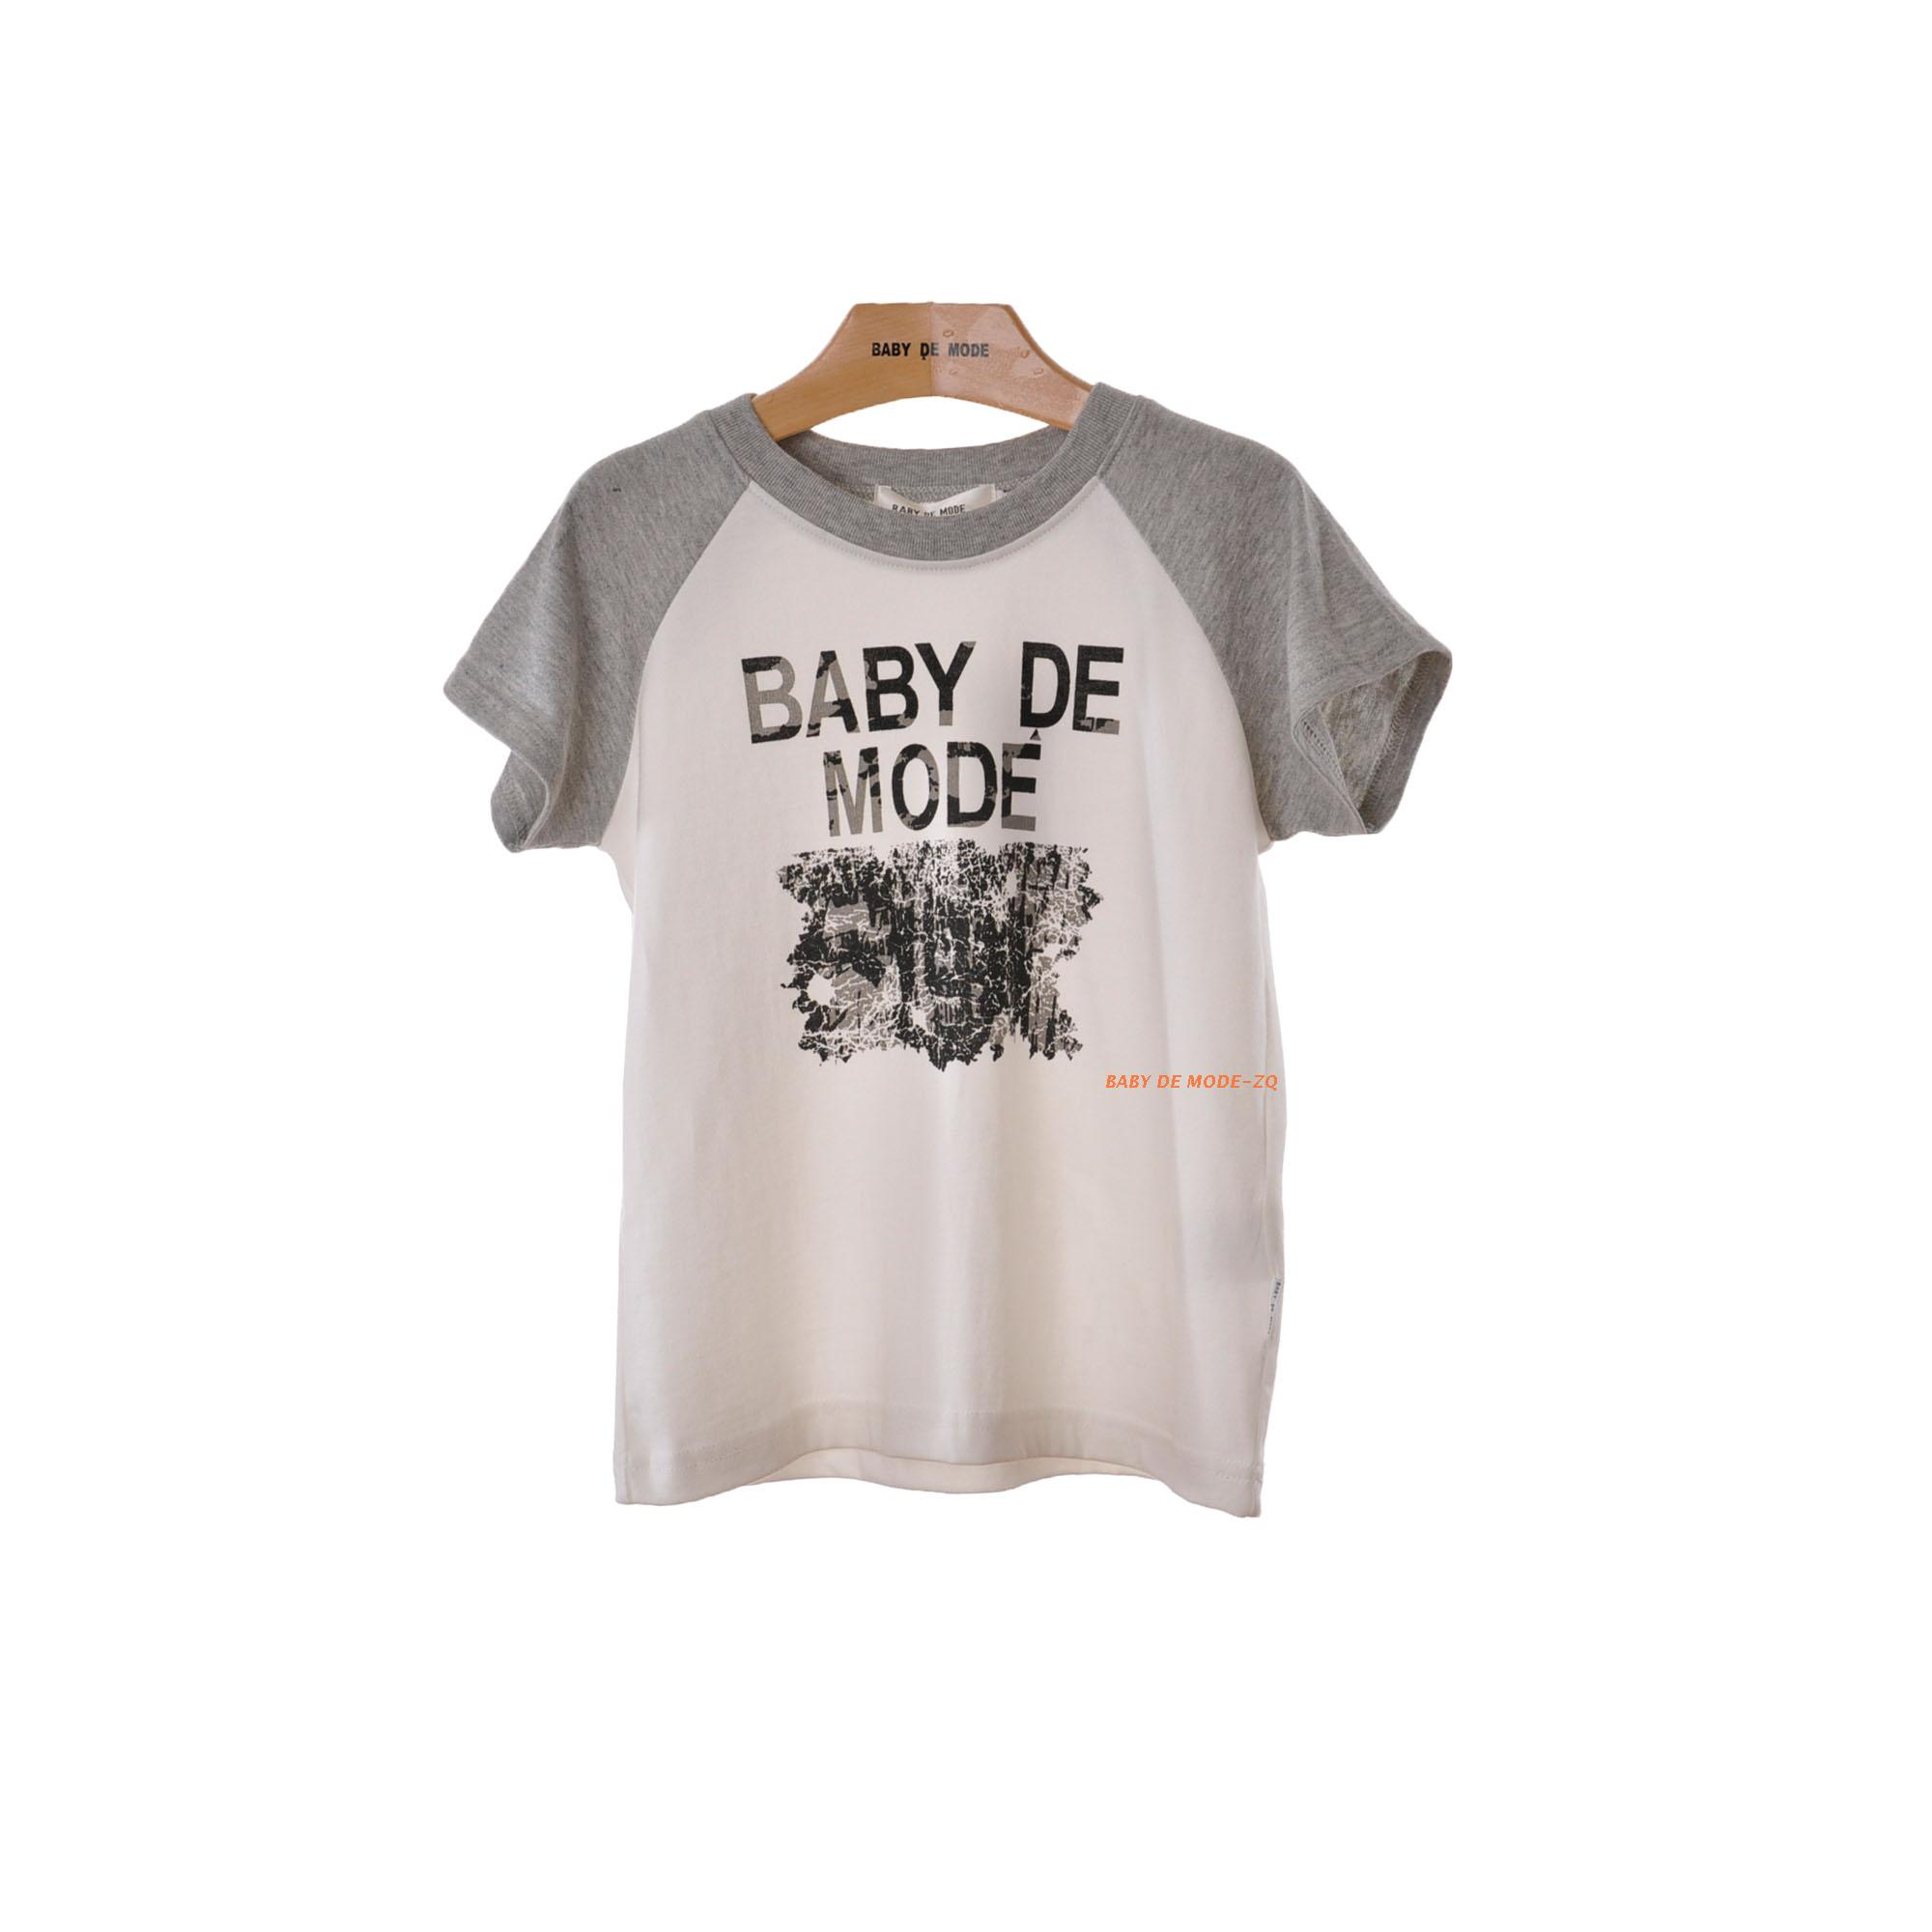 Japanese kids summer [babe modern authentic] knit shirt children's t-shirts